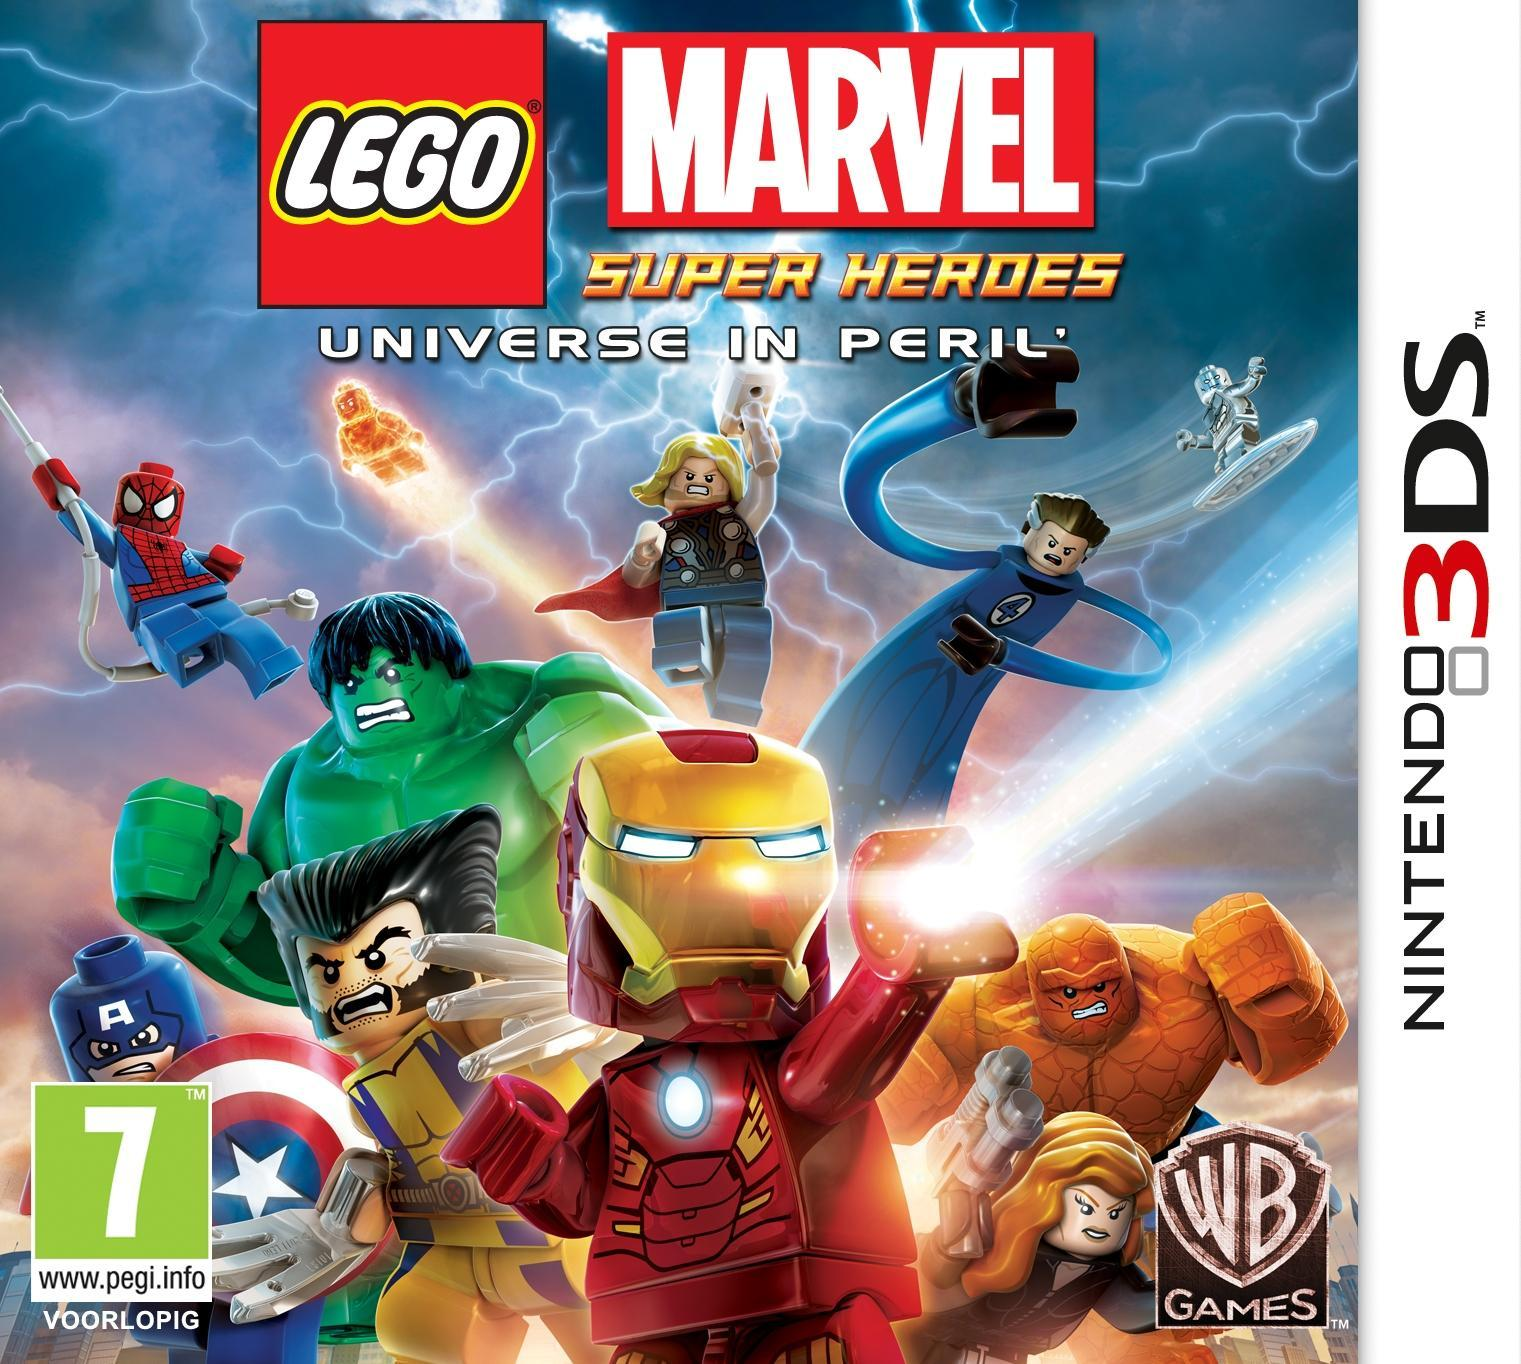 Warner Bros LEGO Marvel Super Heroes 3DS (1000401087) thumbnail